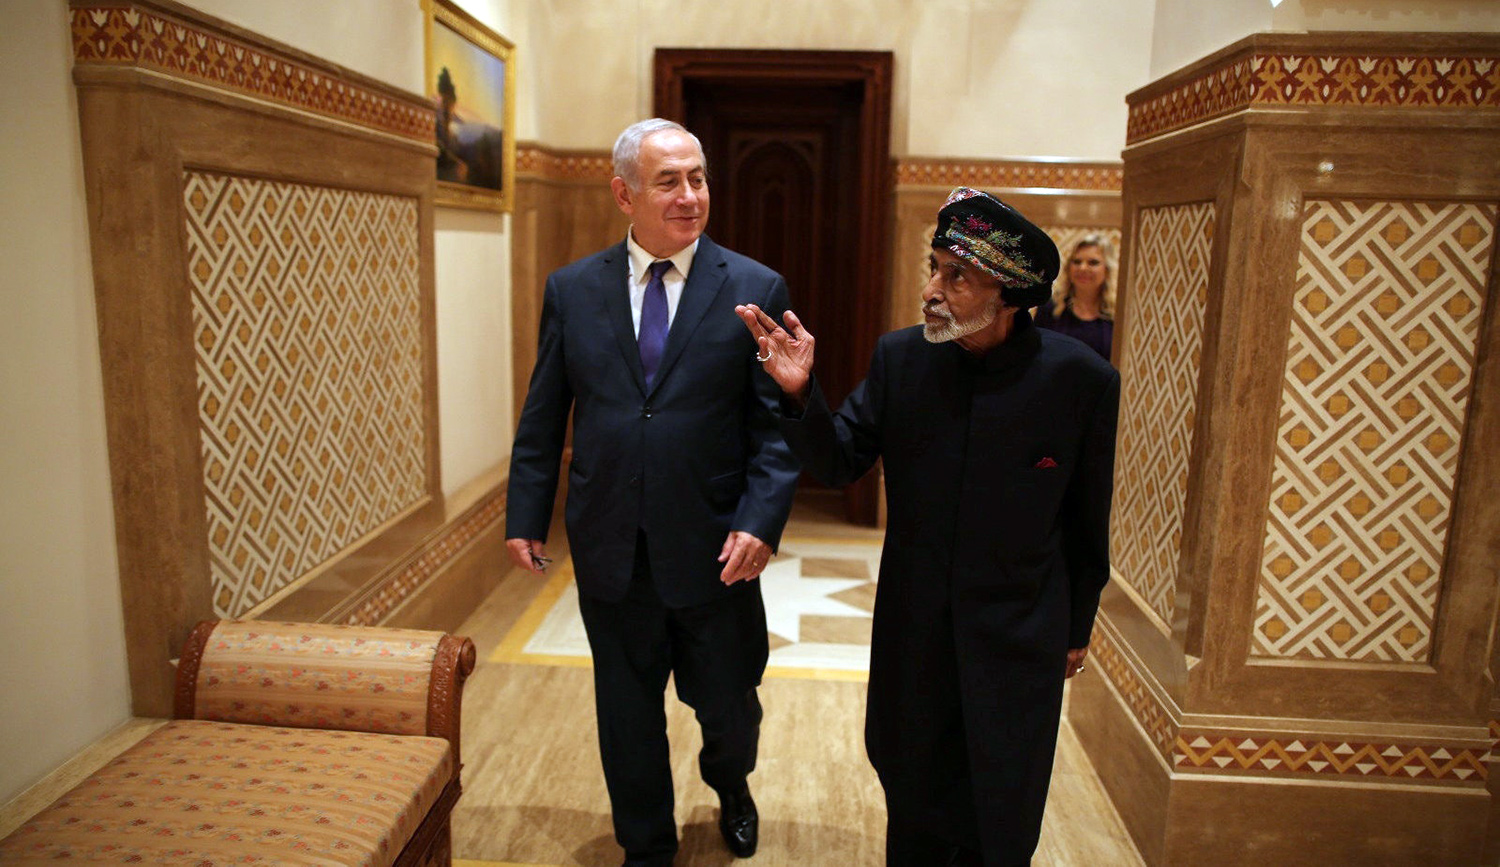 Israeli Prime Minister Benjamin Netanyahu in Oman with its ruler Sultan Qaboos bin Said on October 26, 2018.Prime Minister's office.